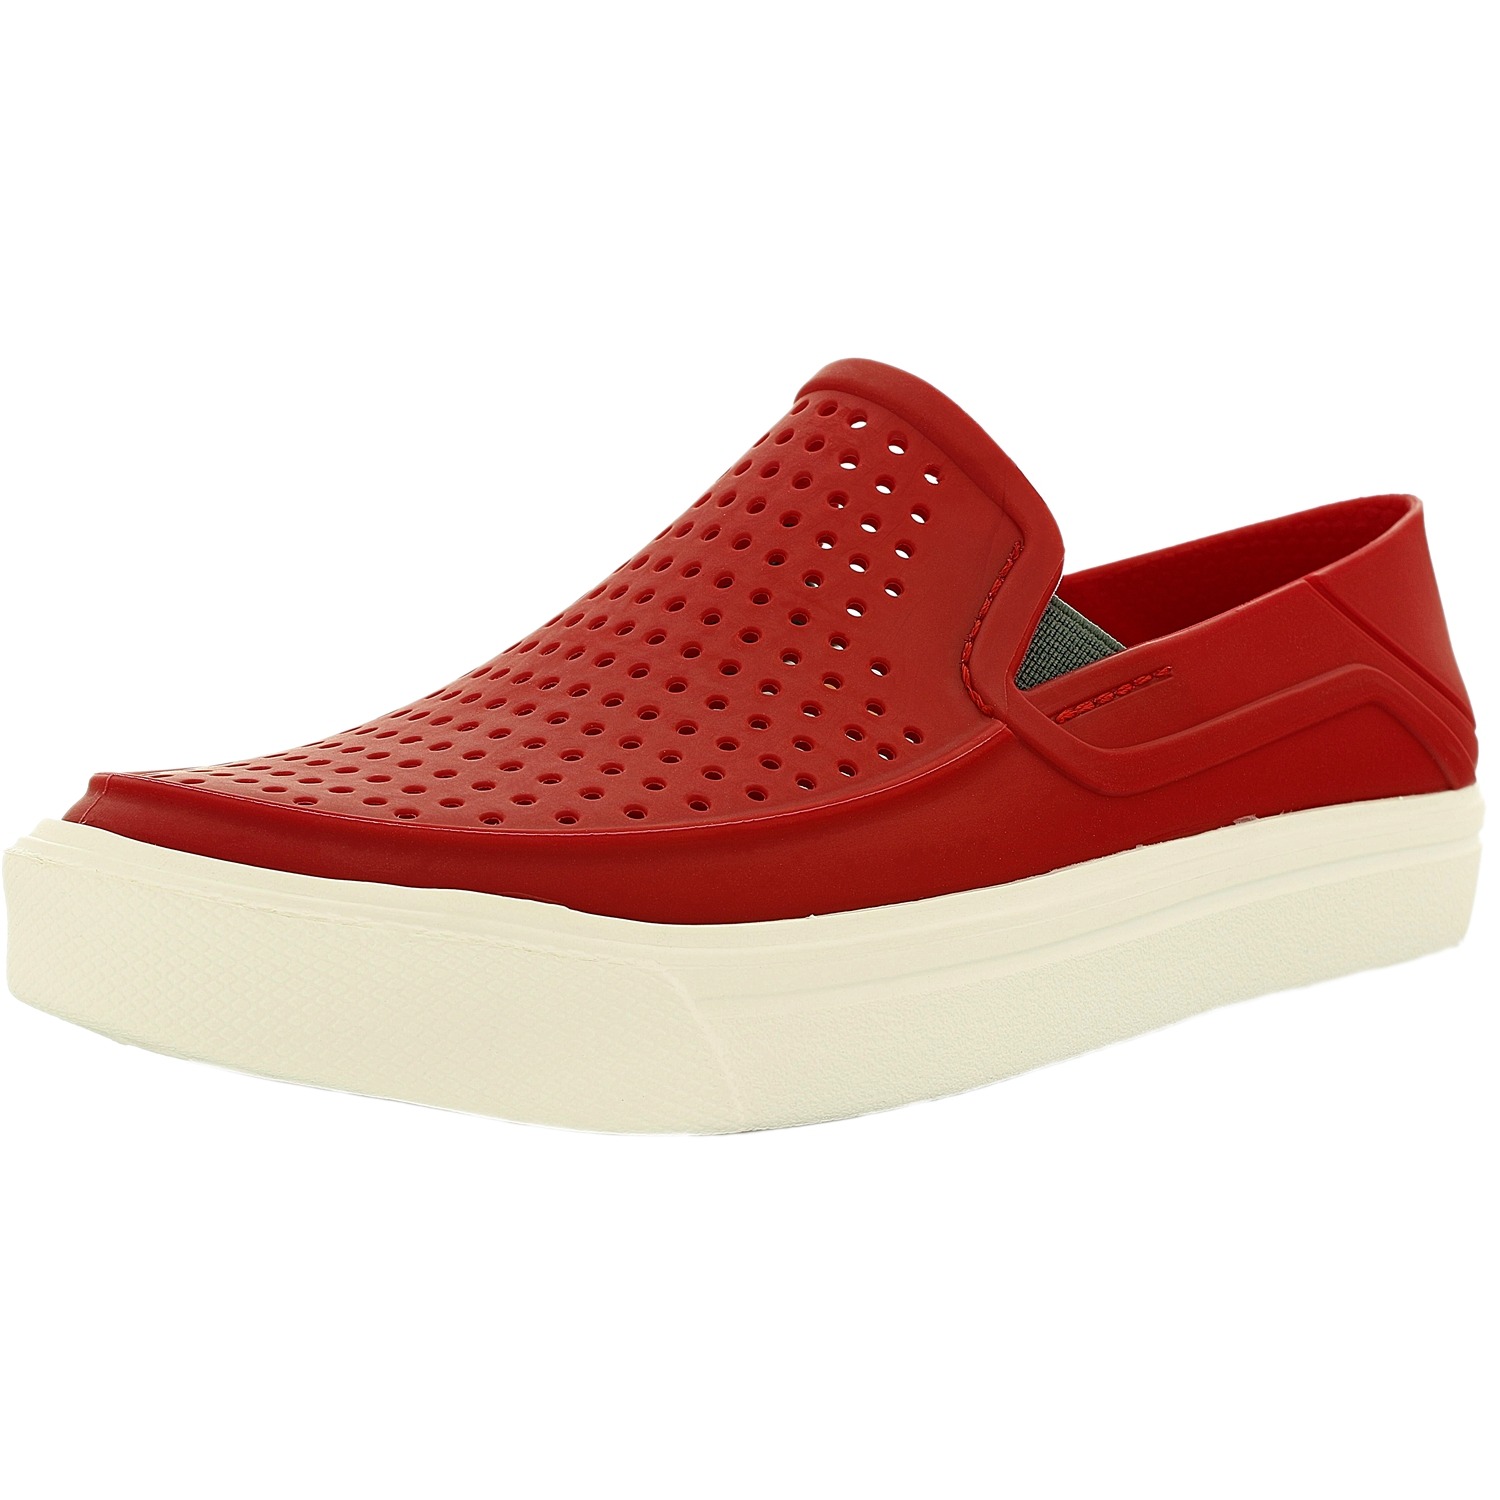 Crocs Boy's Citilane Roka Pepper Ankle-High Flat Shoe 12M by Crocs